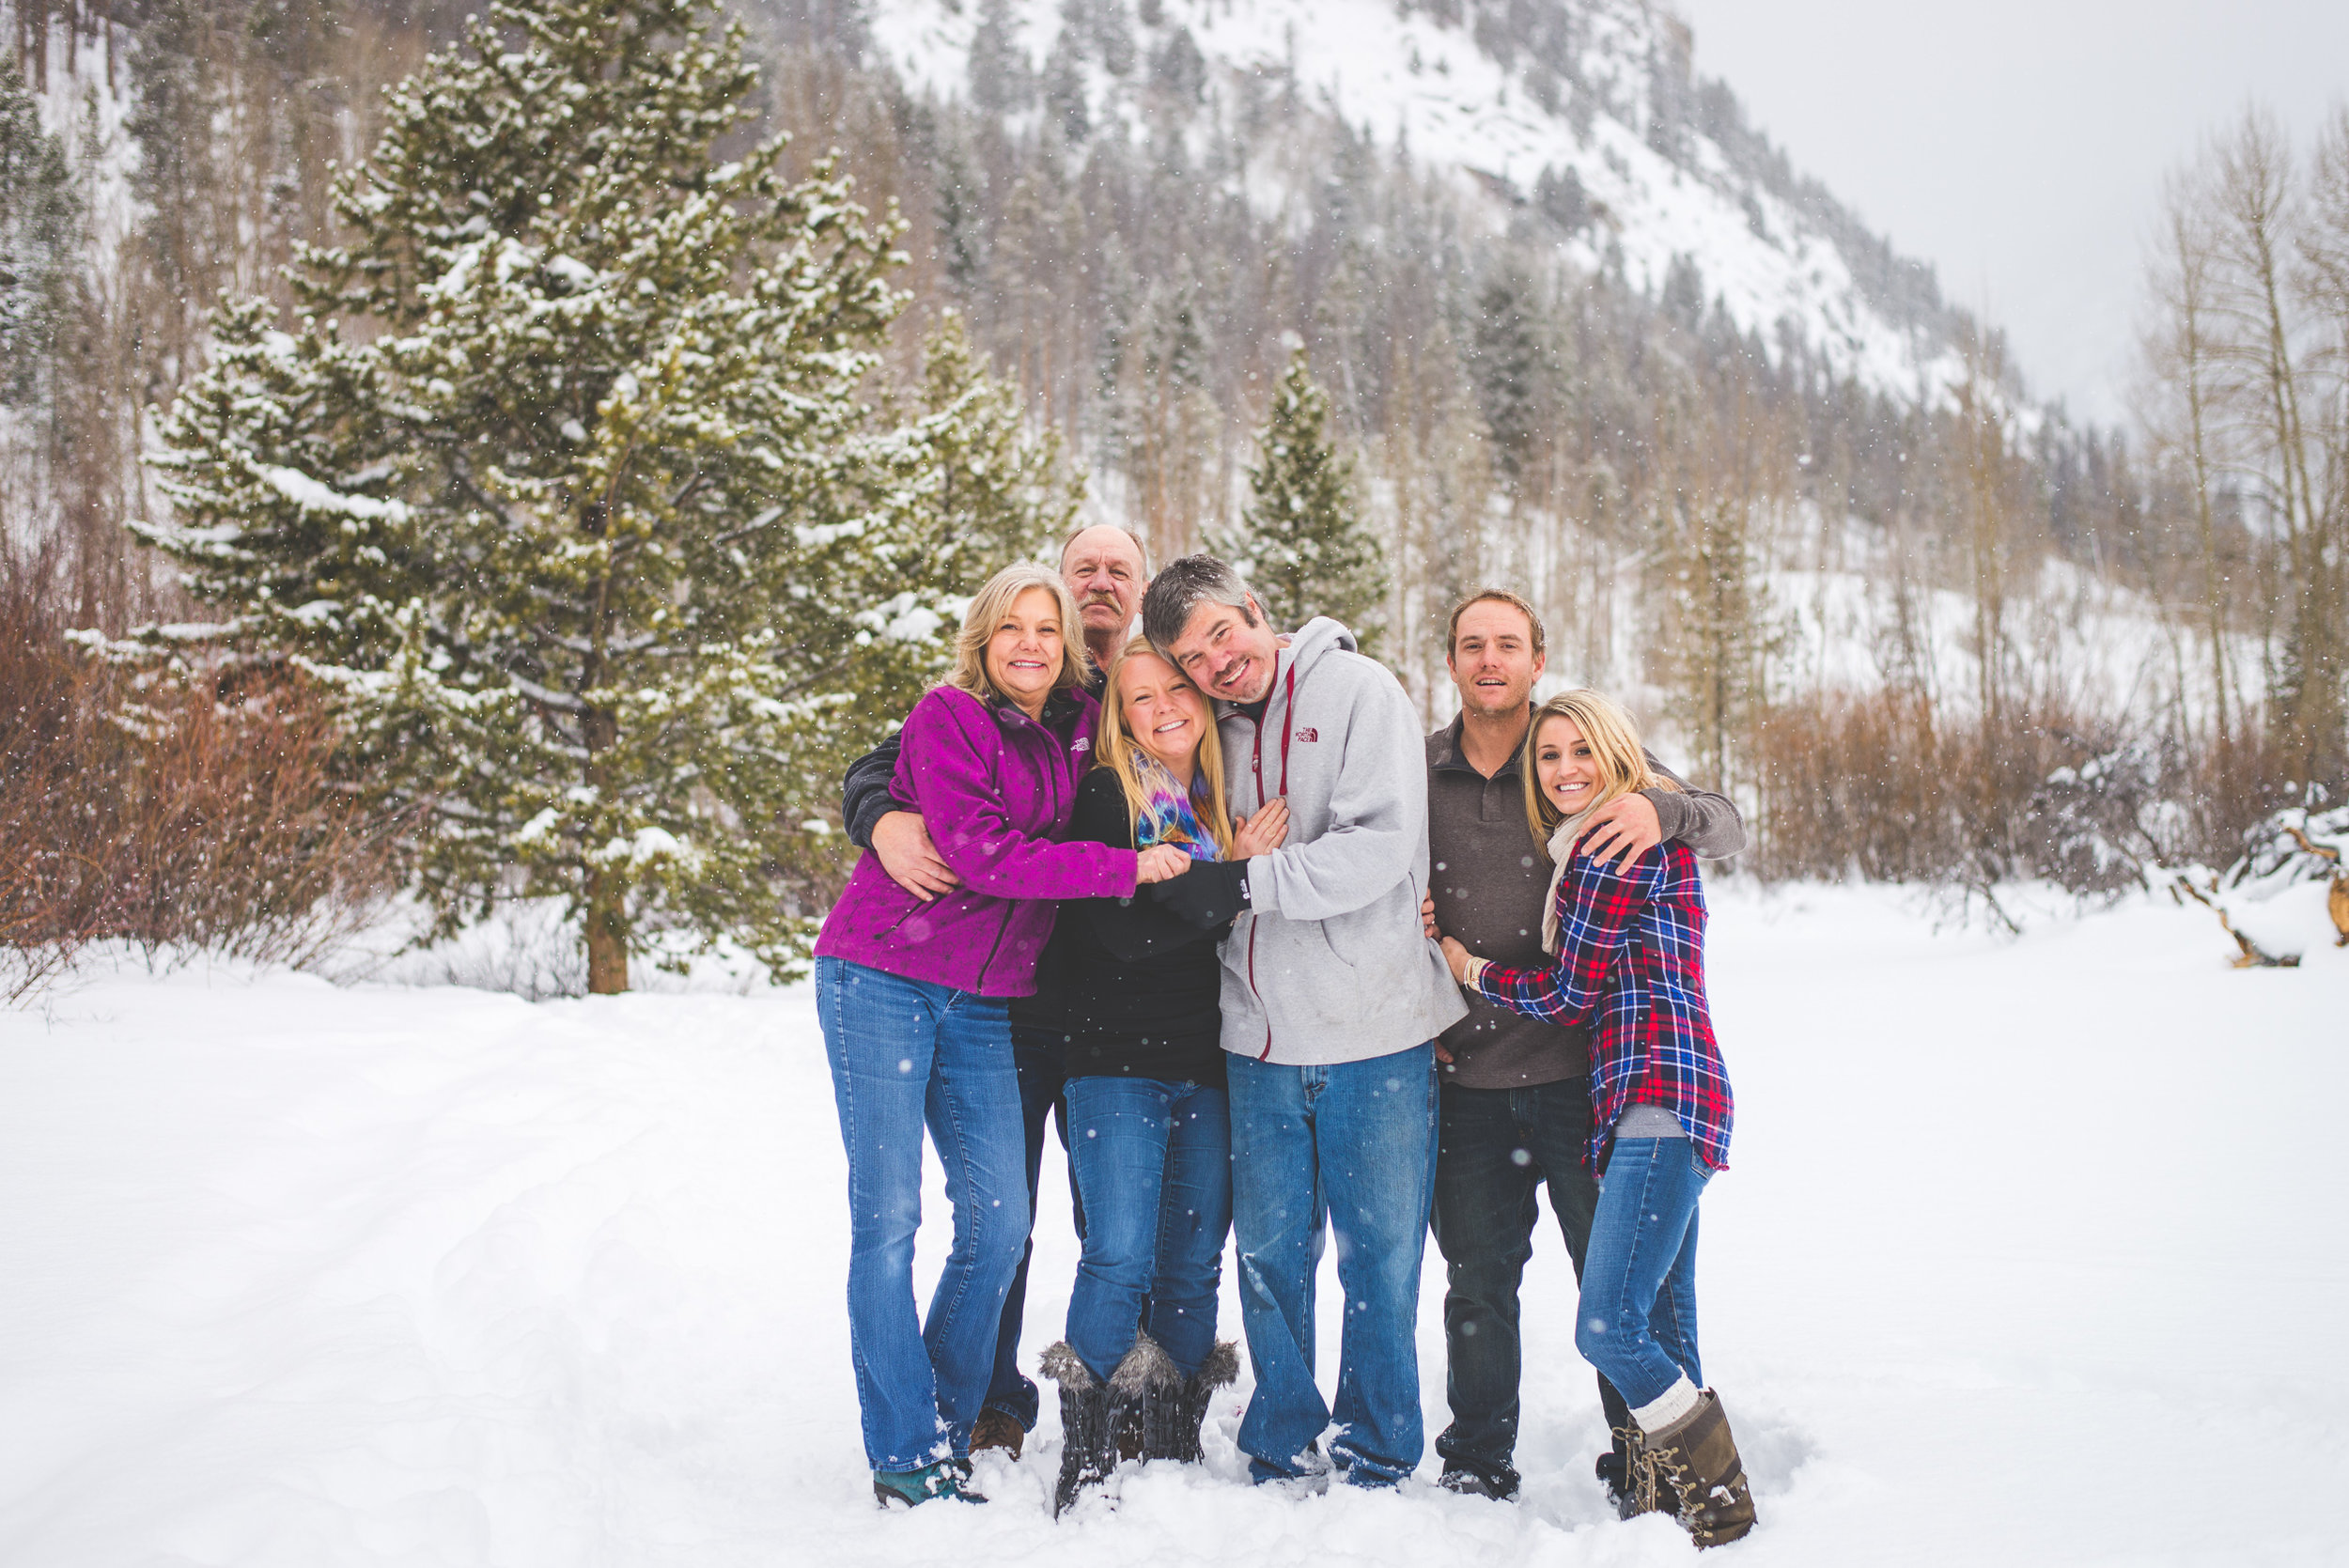 Frisco, Colorado winter family photography session in the middle of fresh,falling snow